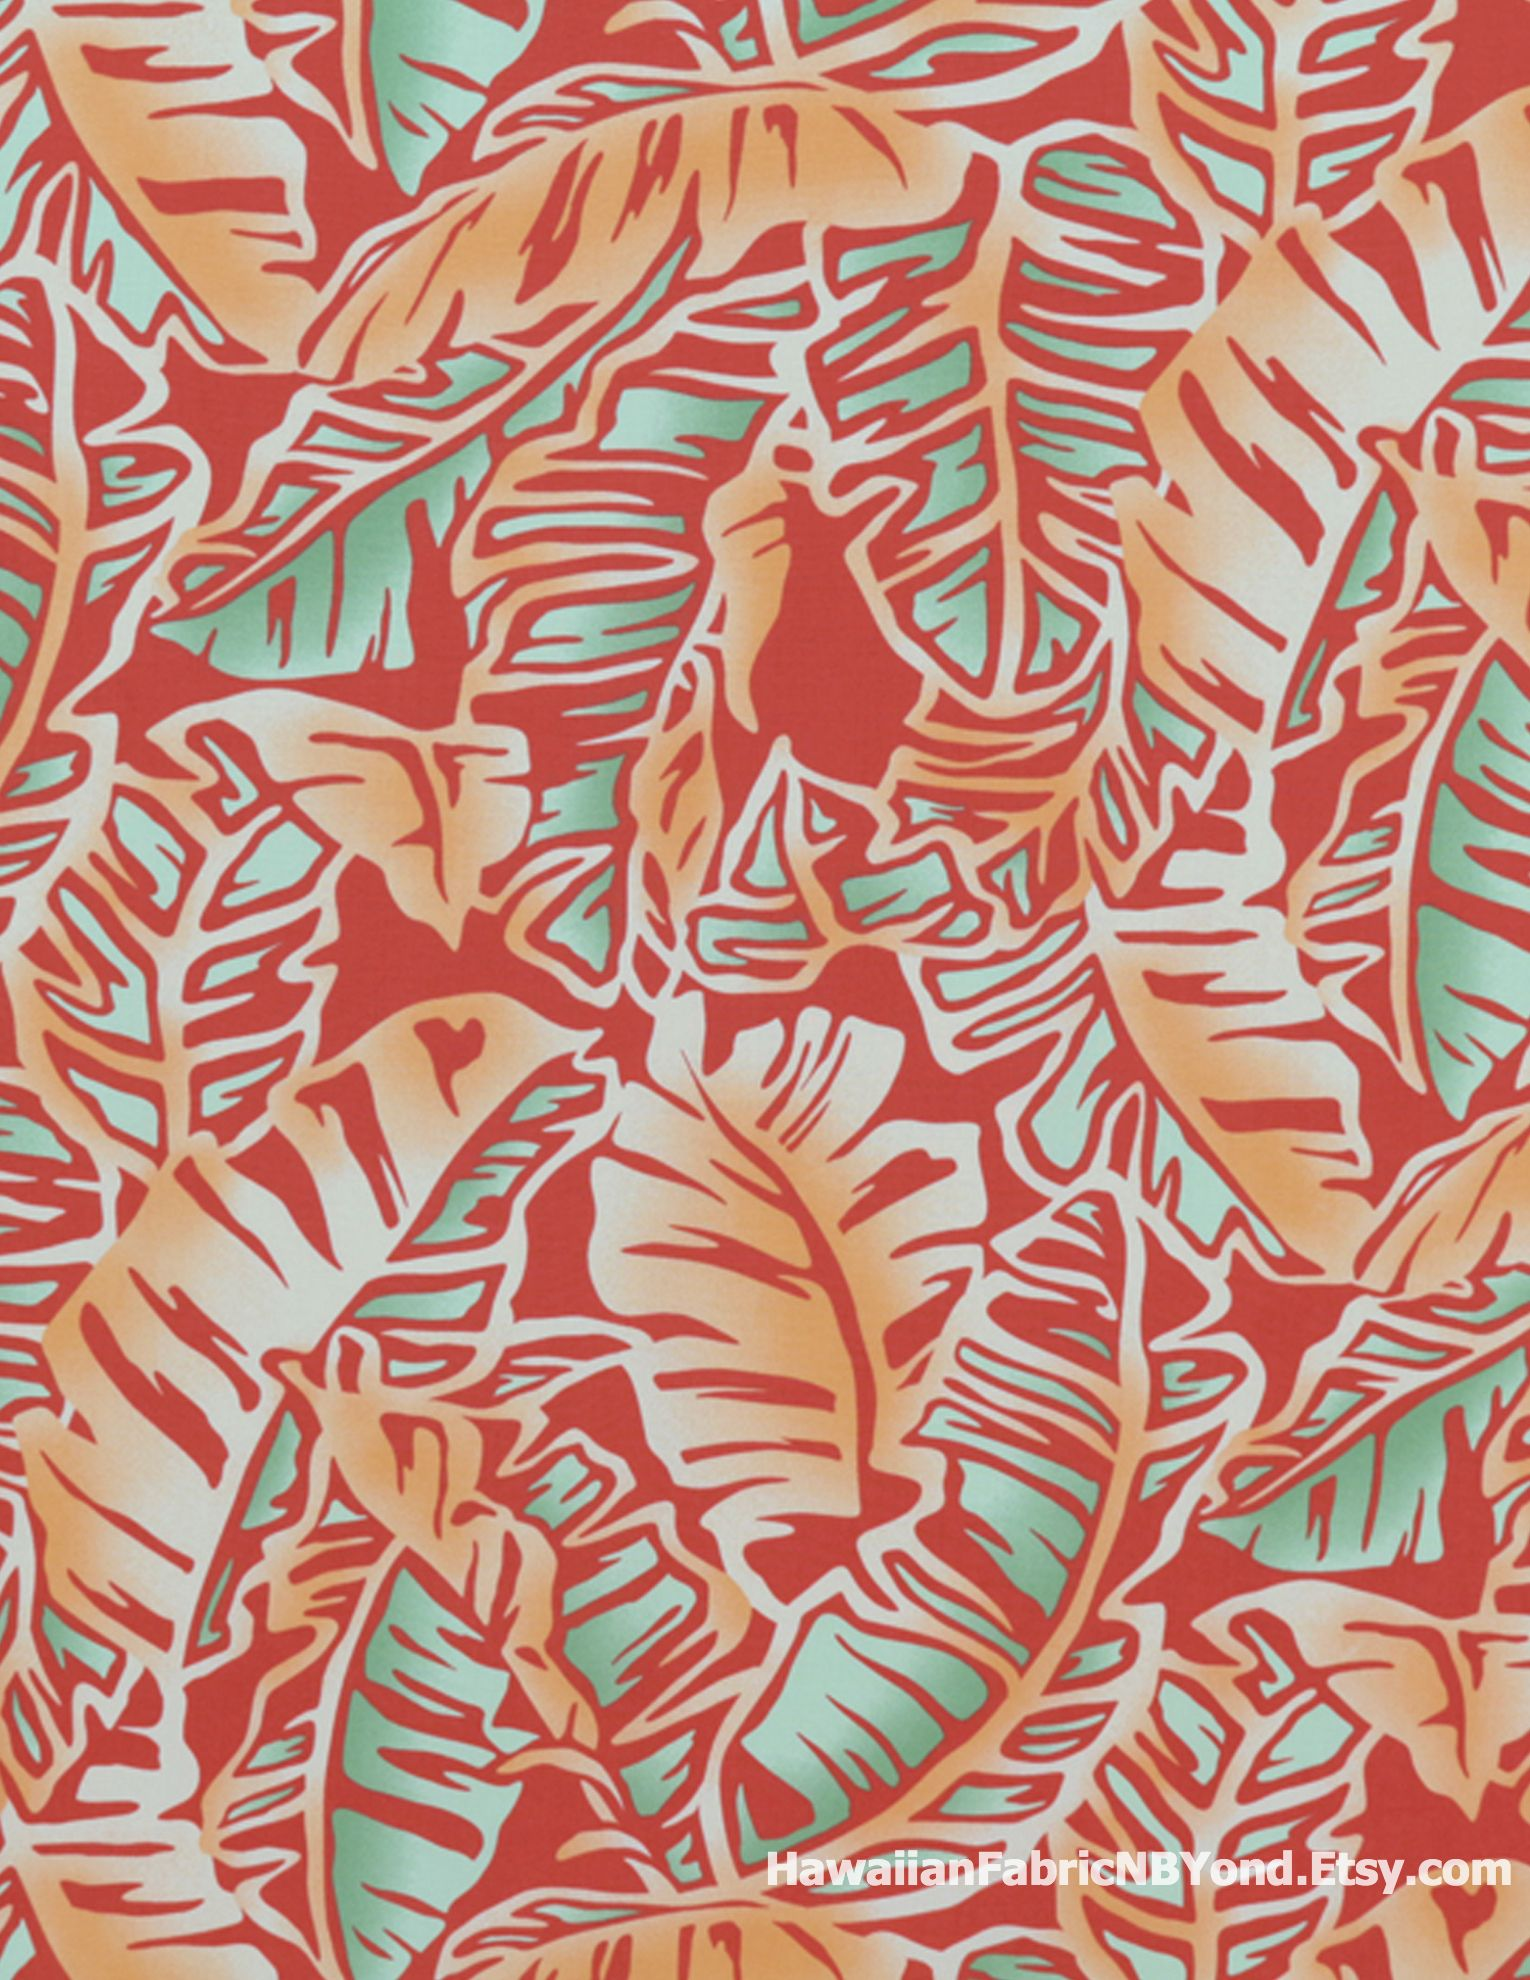 tropical leaf fabric large print of banana leaves in oranges